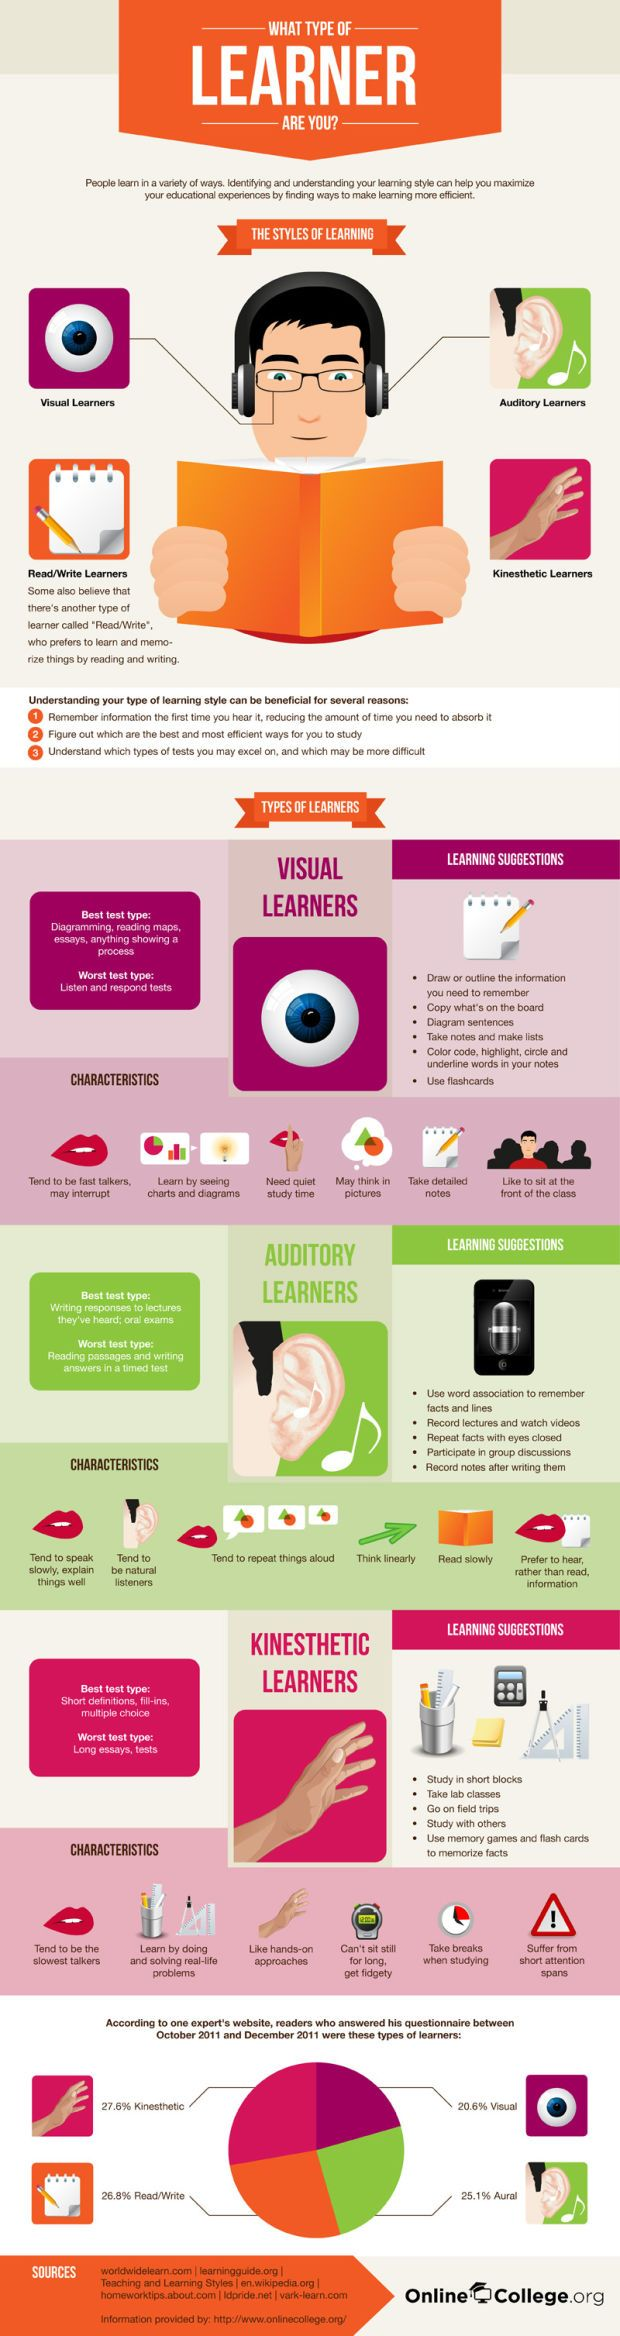 www.theultralinx.com.What Type of Learner Are You? This infographic and its visuals could be useful for helping ELLs identify the different types of learning styles, and possibly express to their teachers how they personally learn best, which in turn may help with differentiating their lessons.